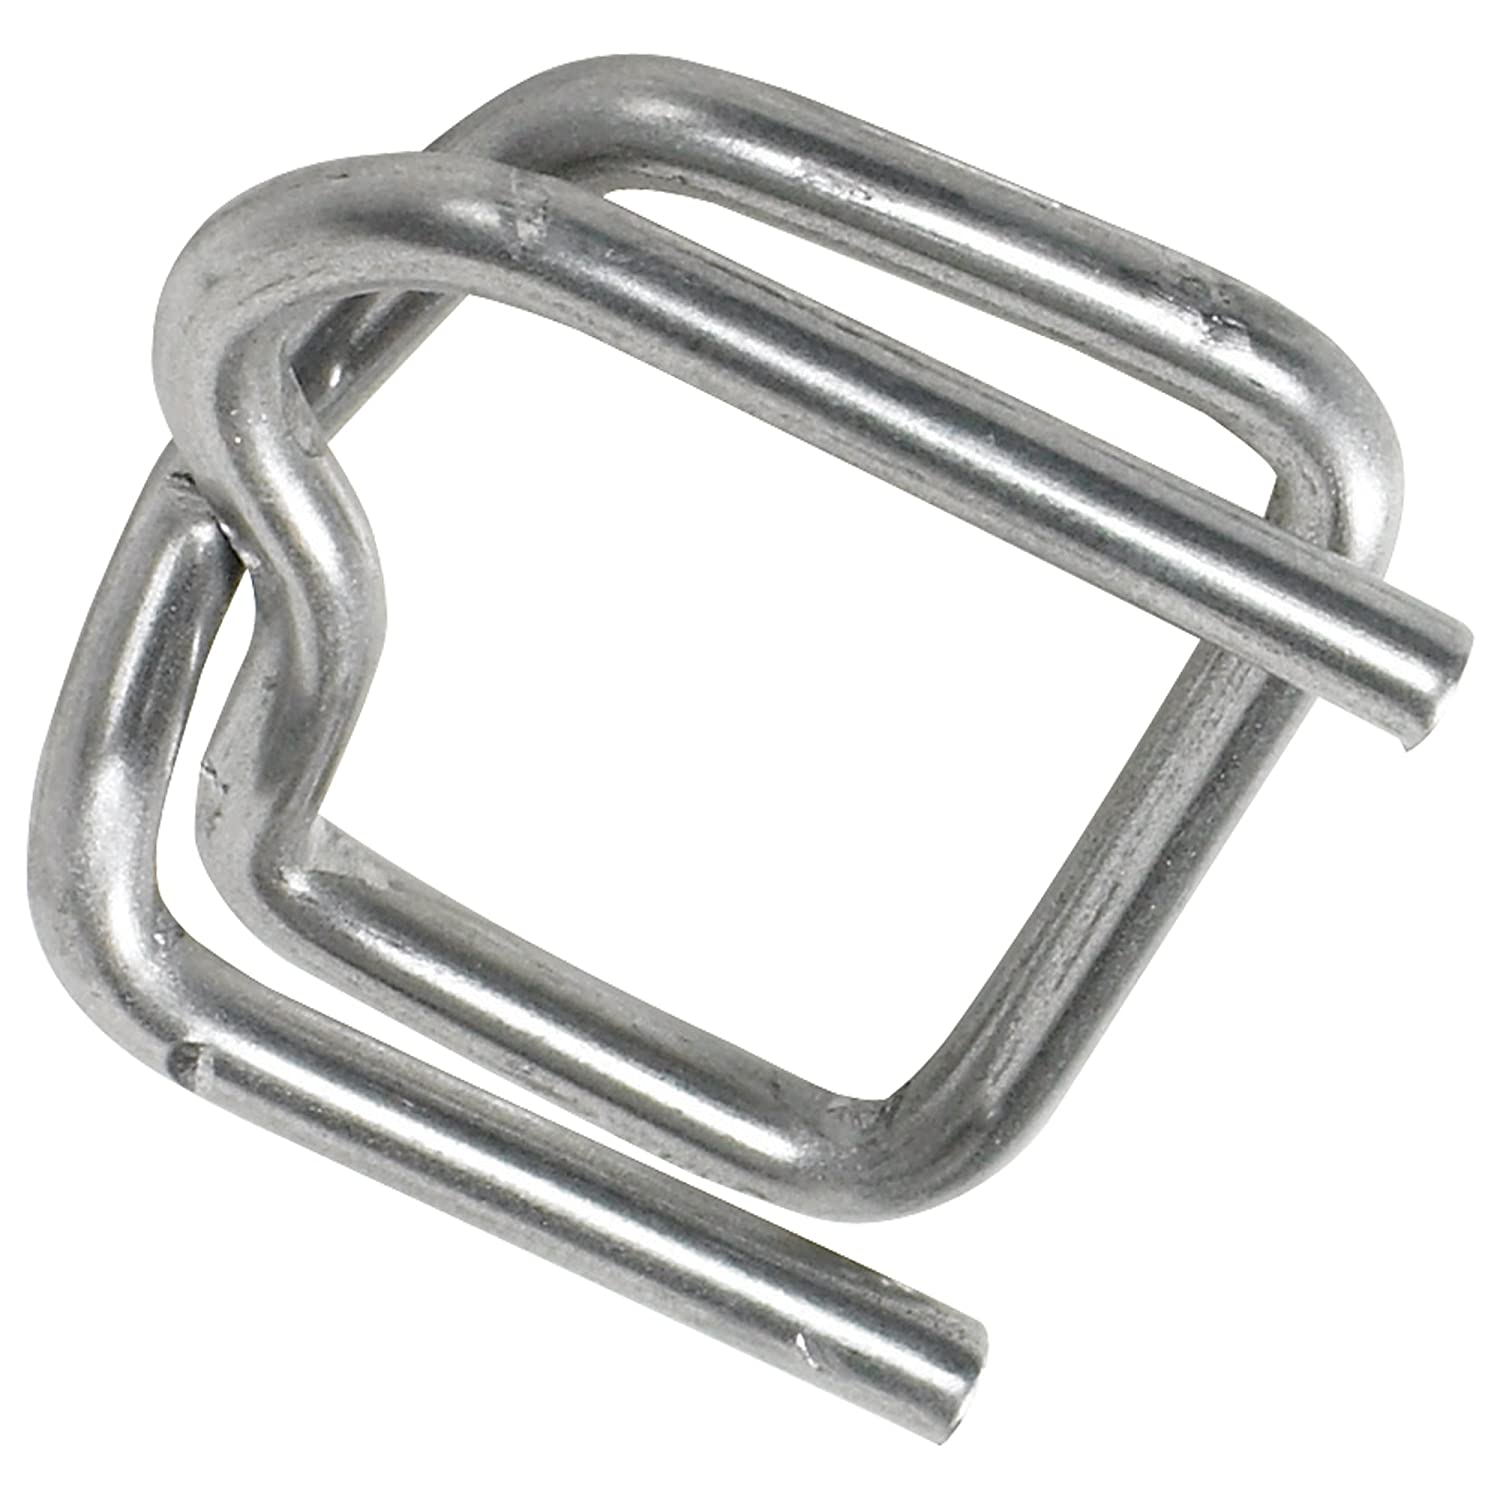 Heavy-Duty Wire Poly Strapping Buckles 1000 Case 2' Award Indefinitely Silver 1